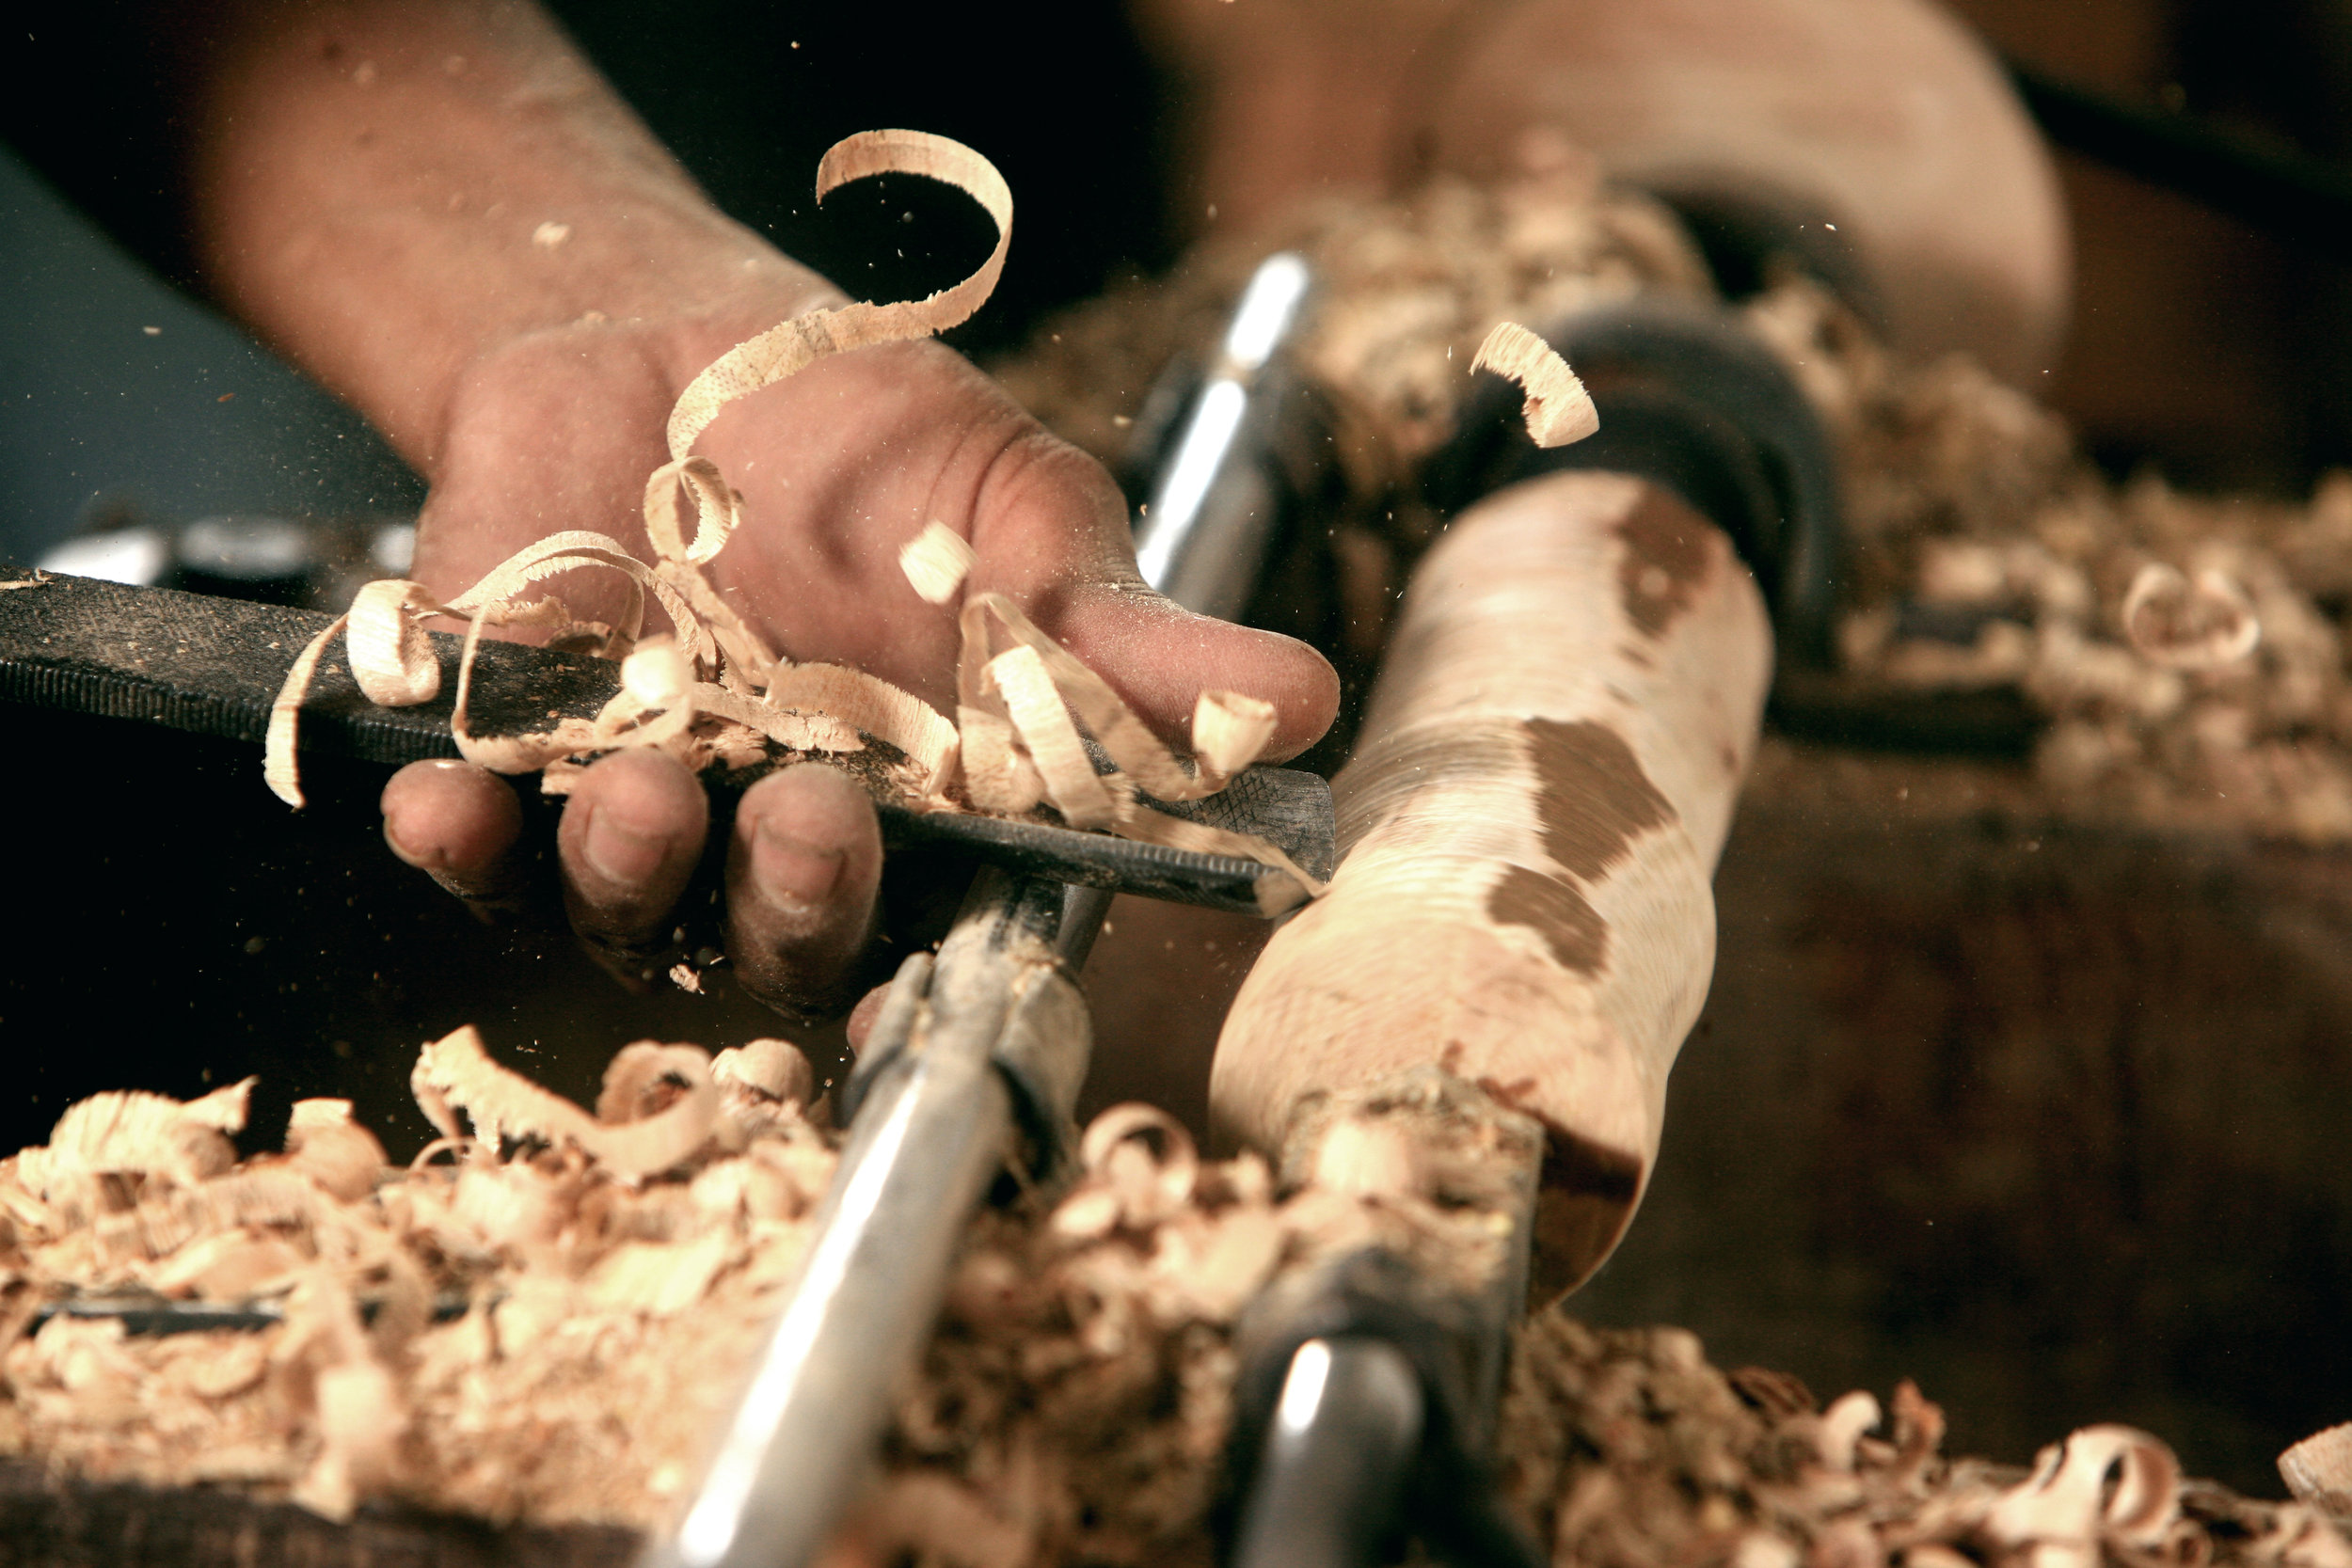 Woodturning image from Wikimedia Commons